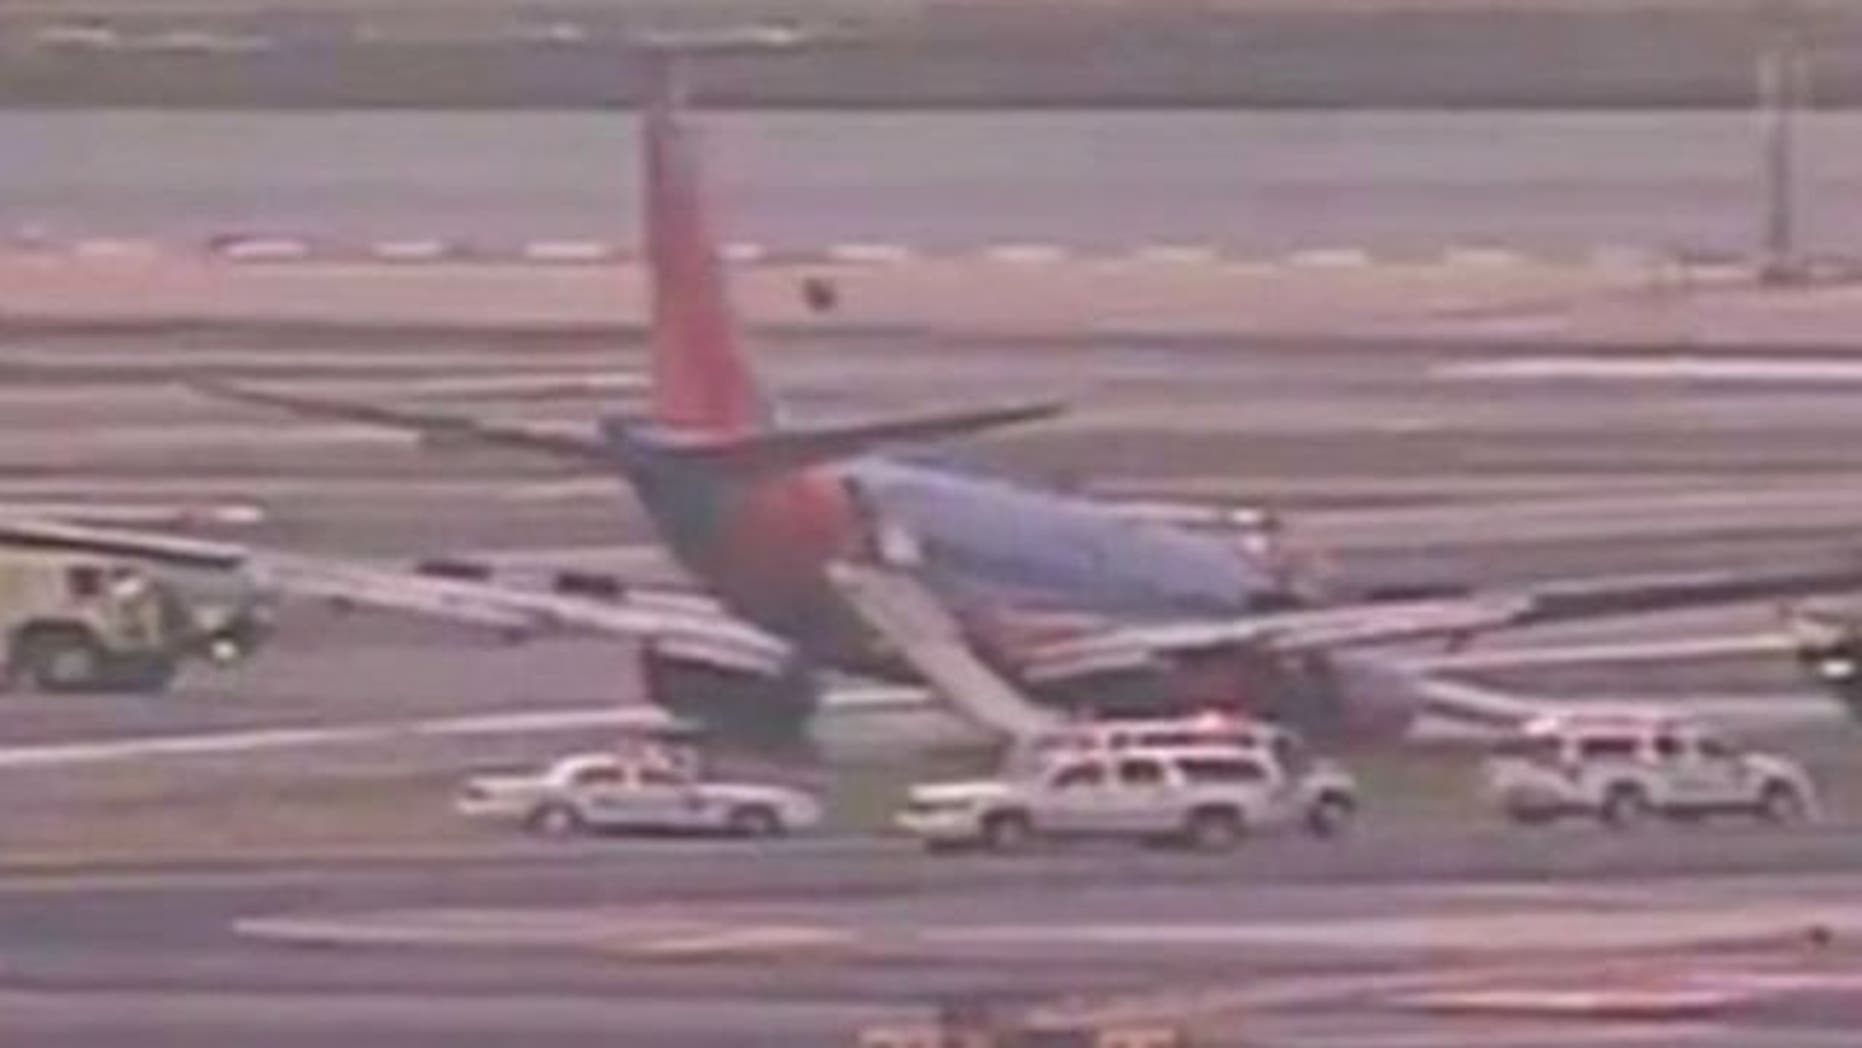 July 22, 2013: A Southwest Airlines plane makes a rough landing in New York.